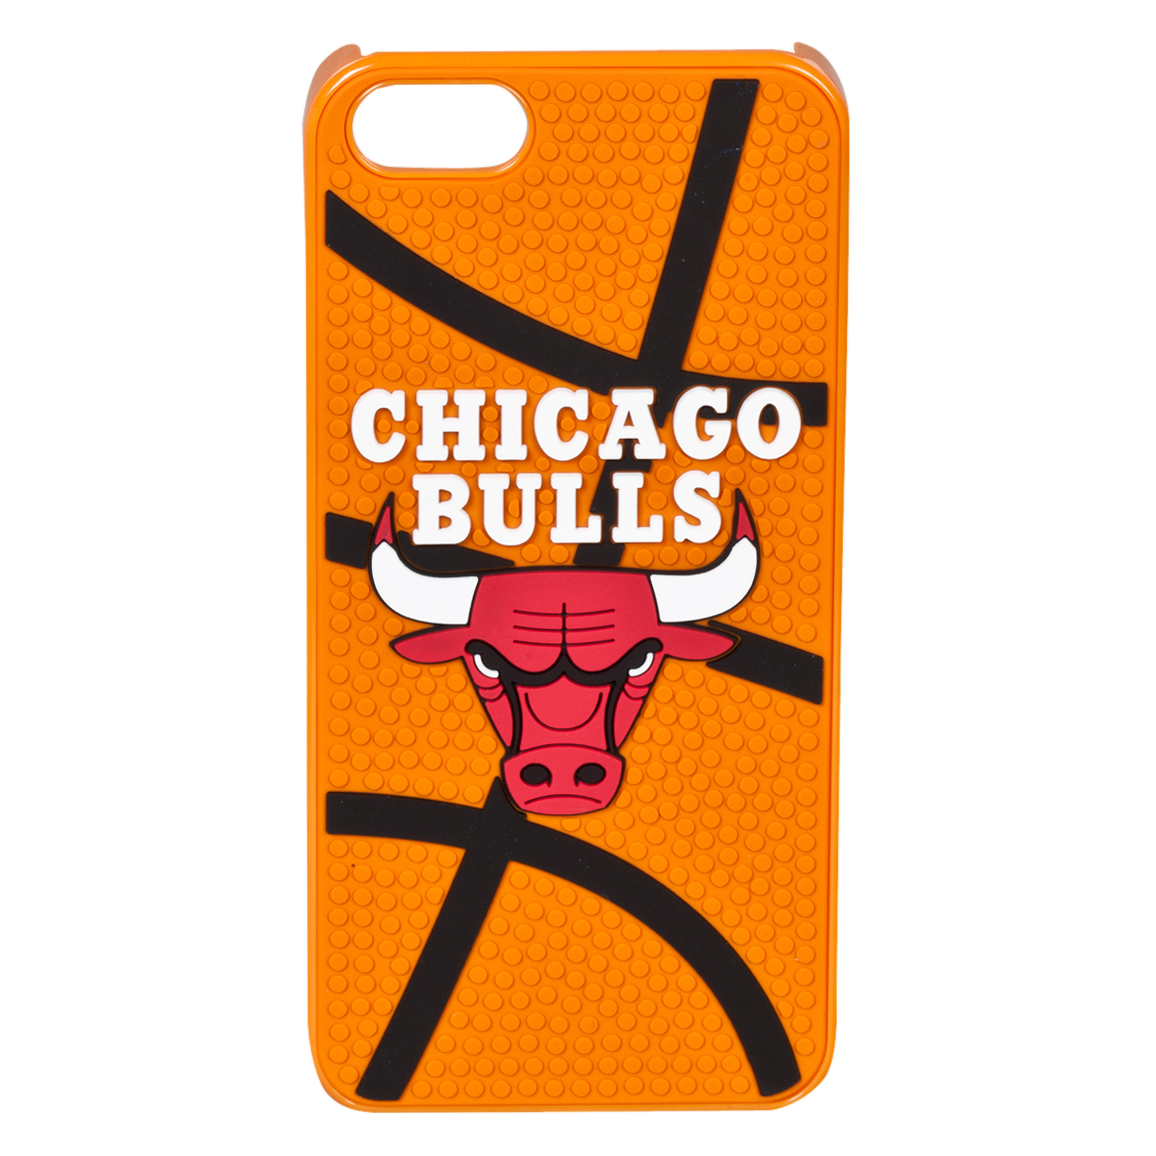 Chicago Bulls Iphone 5 Hard Case